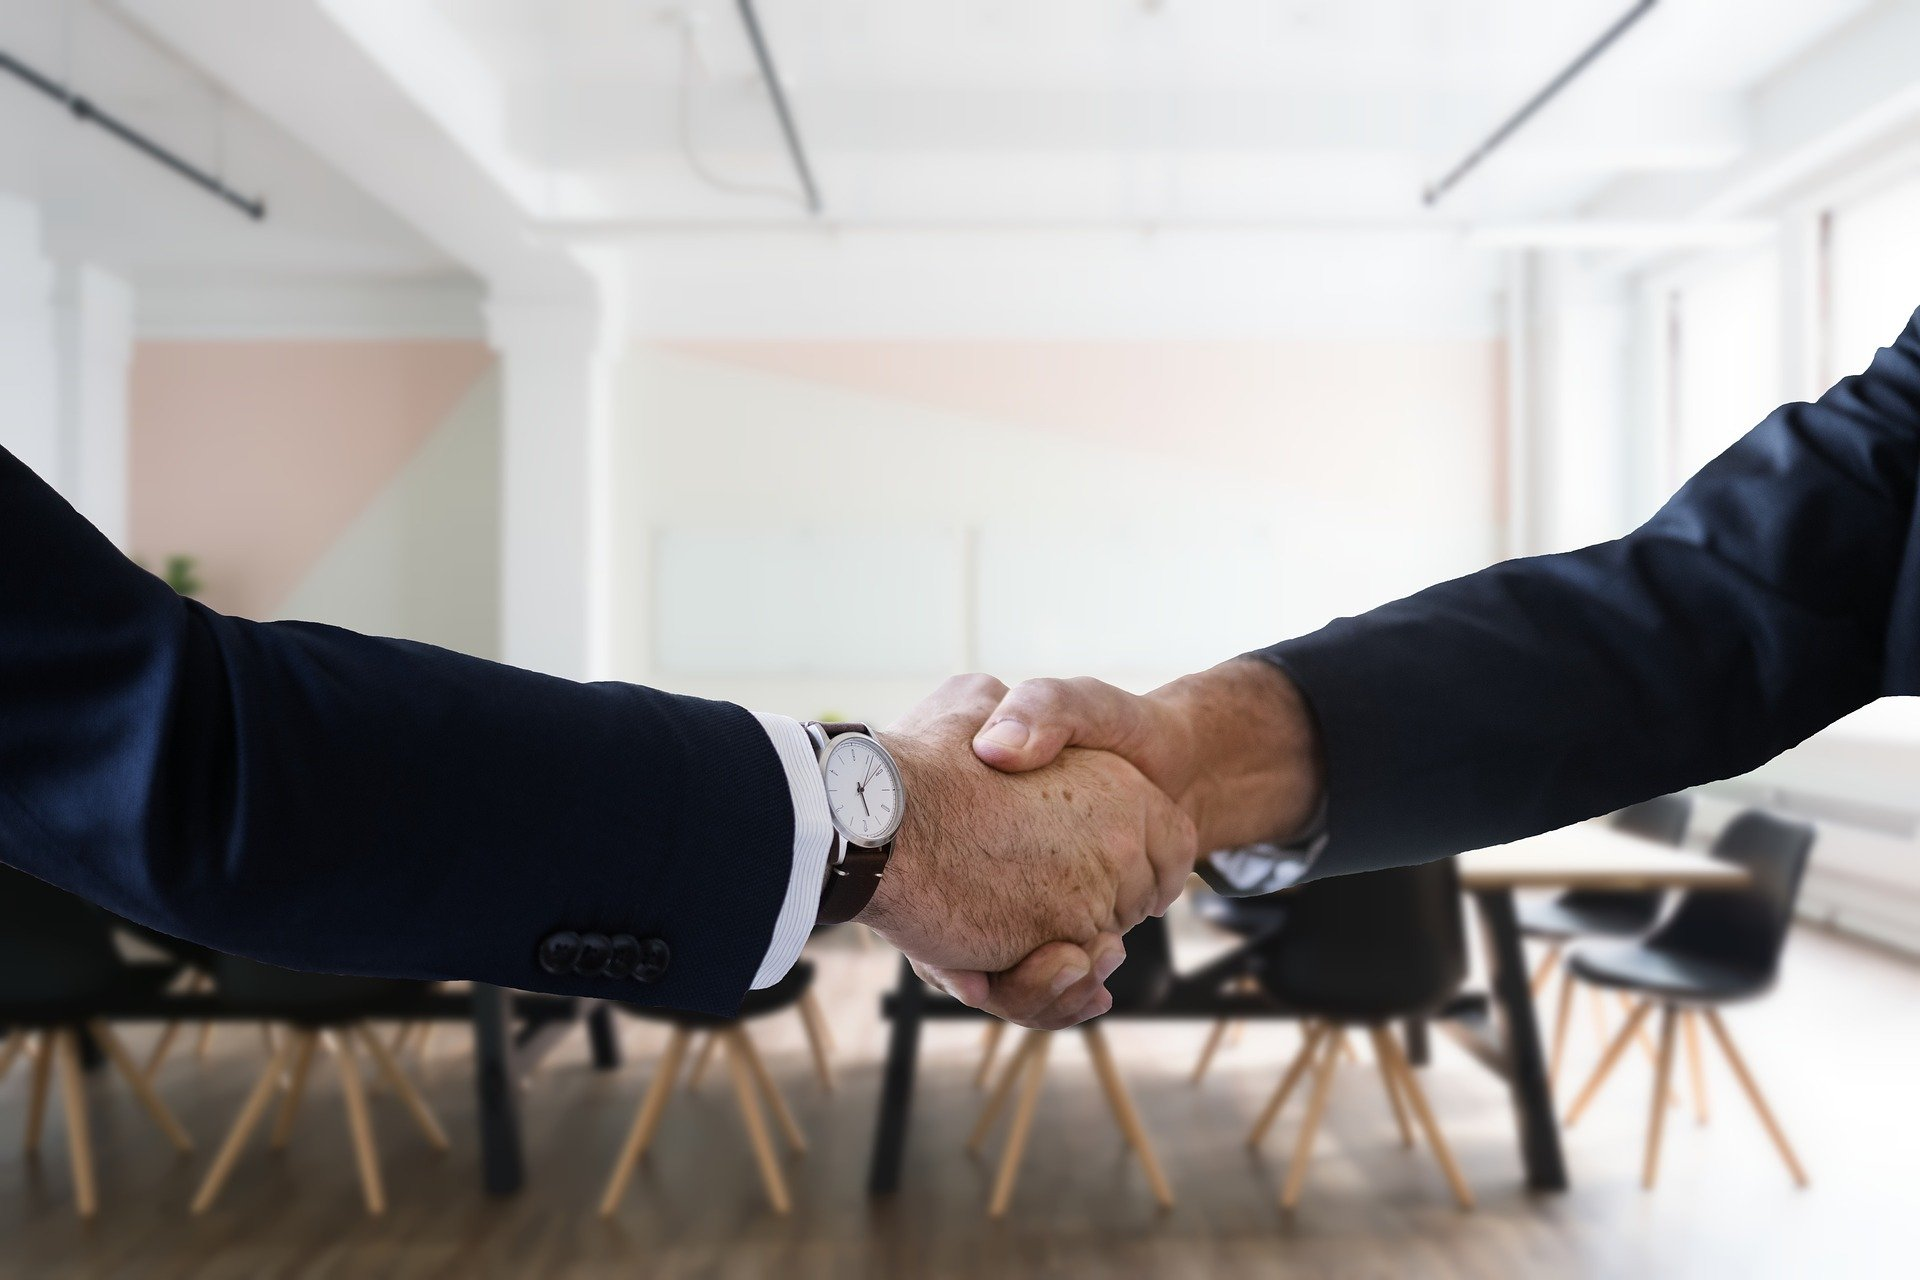 25 Benefits Of Working With A Recruiter